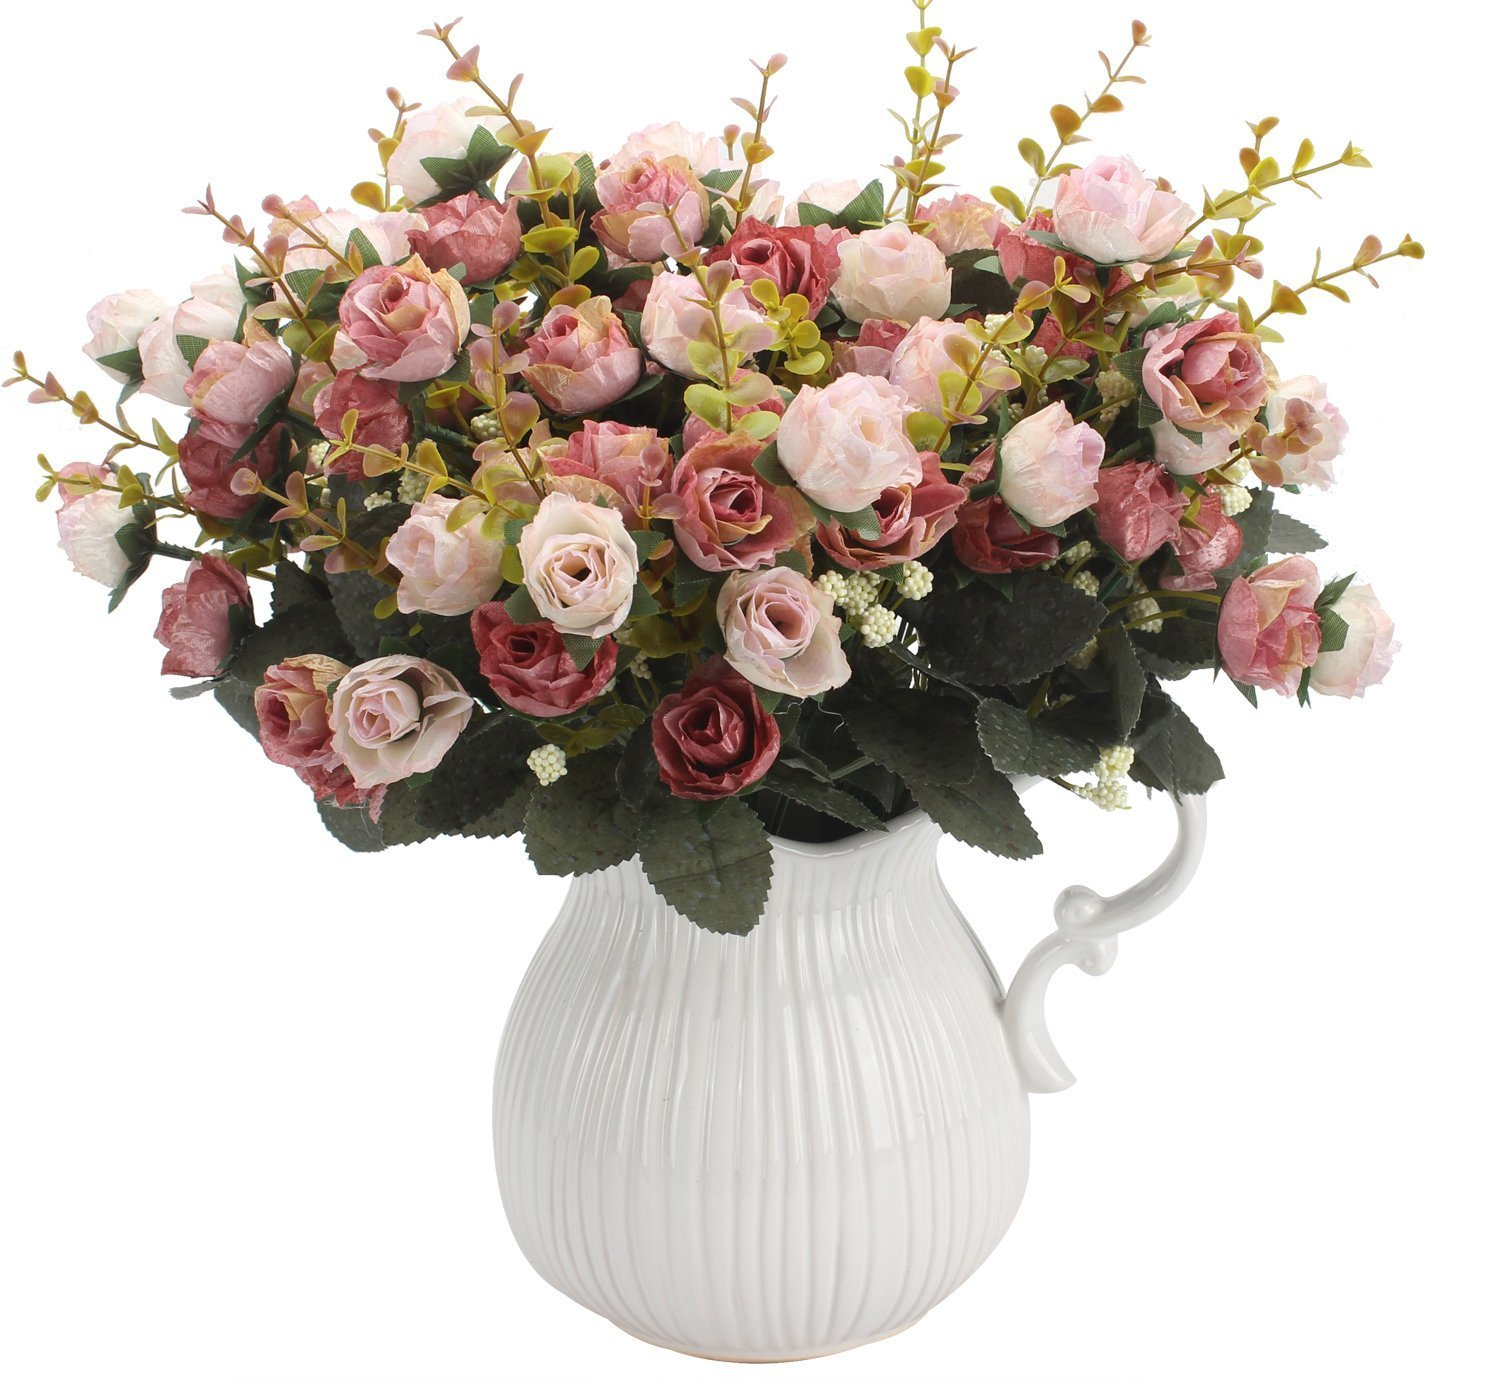 Amkun 7 Branch 21 Heads Artificial Rose Silk Fake Flowers Home Party Wedding Decor Bouquet (Pink Coffee)